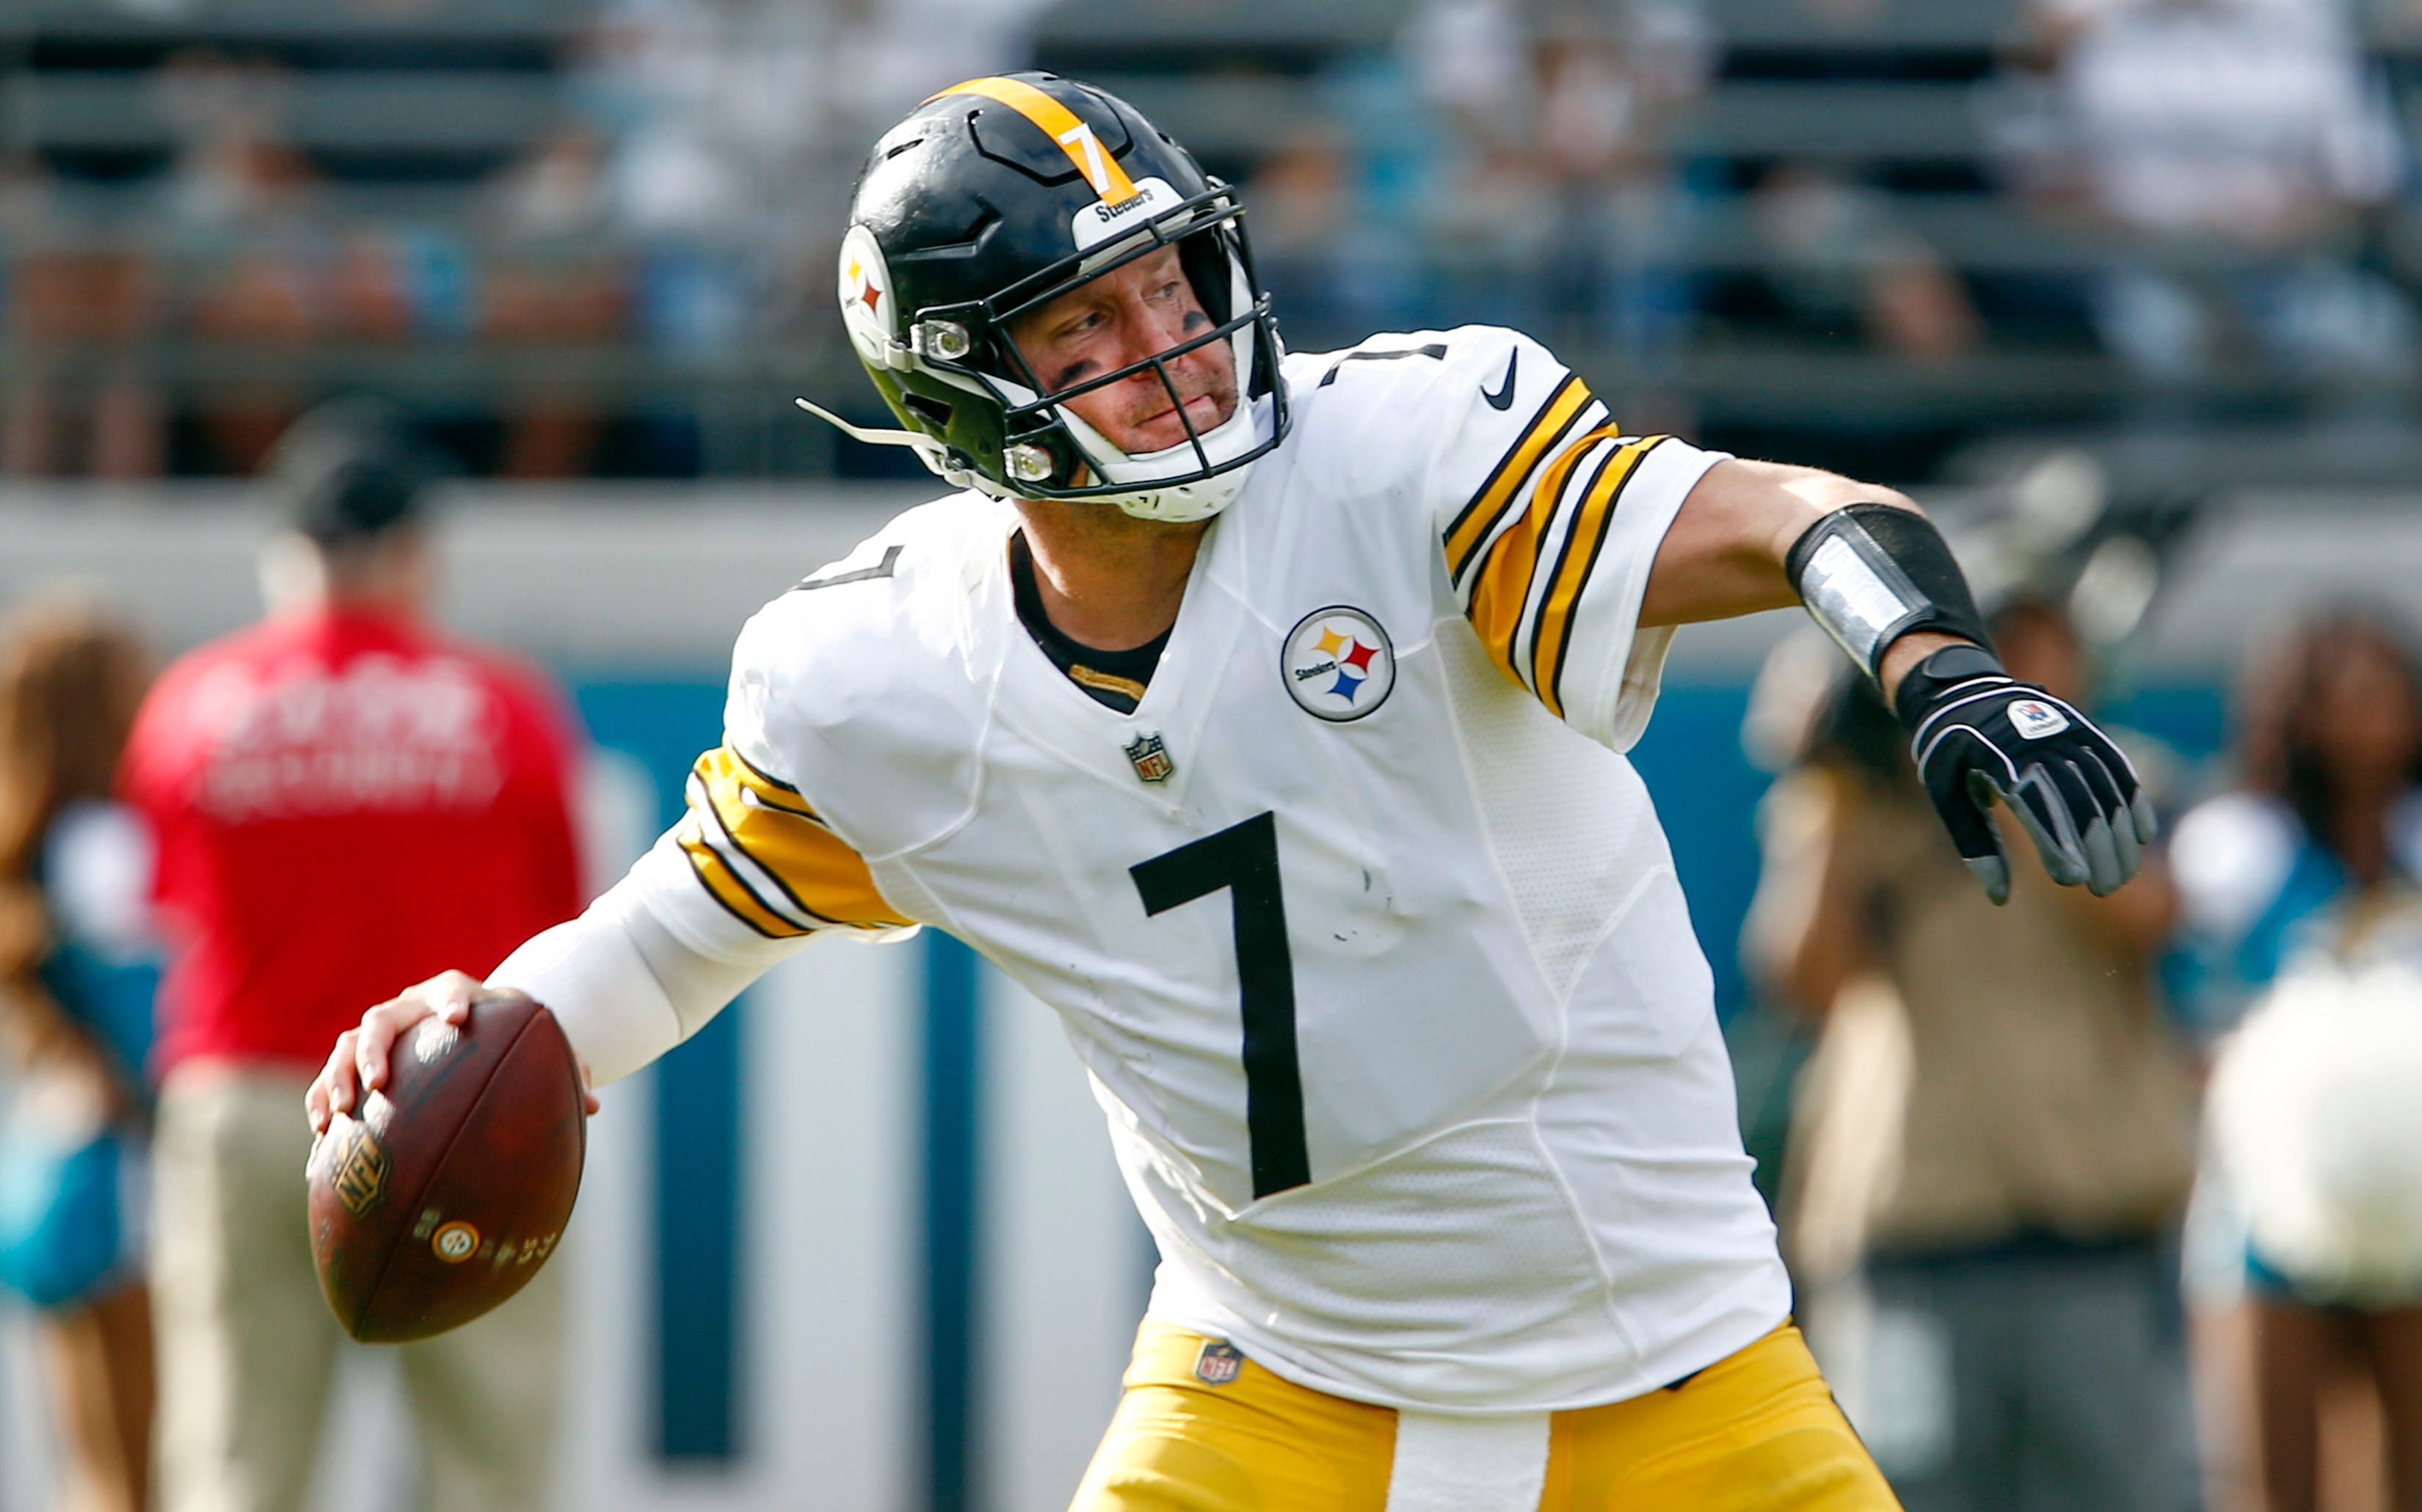 Steelers quarterback Ben Roethlisberger came on strong in Week 11 to finish with 314 passing yards and two touchdowns. He also had a rushing score.